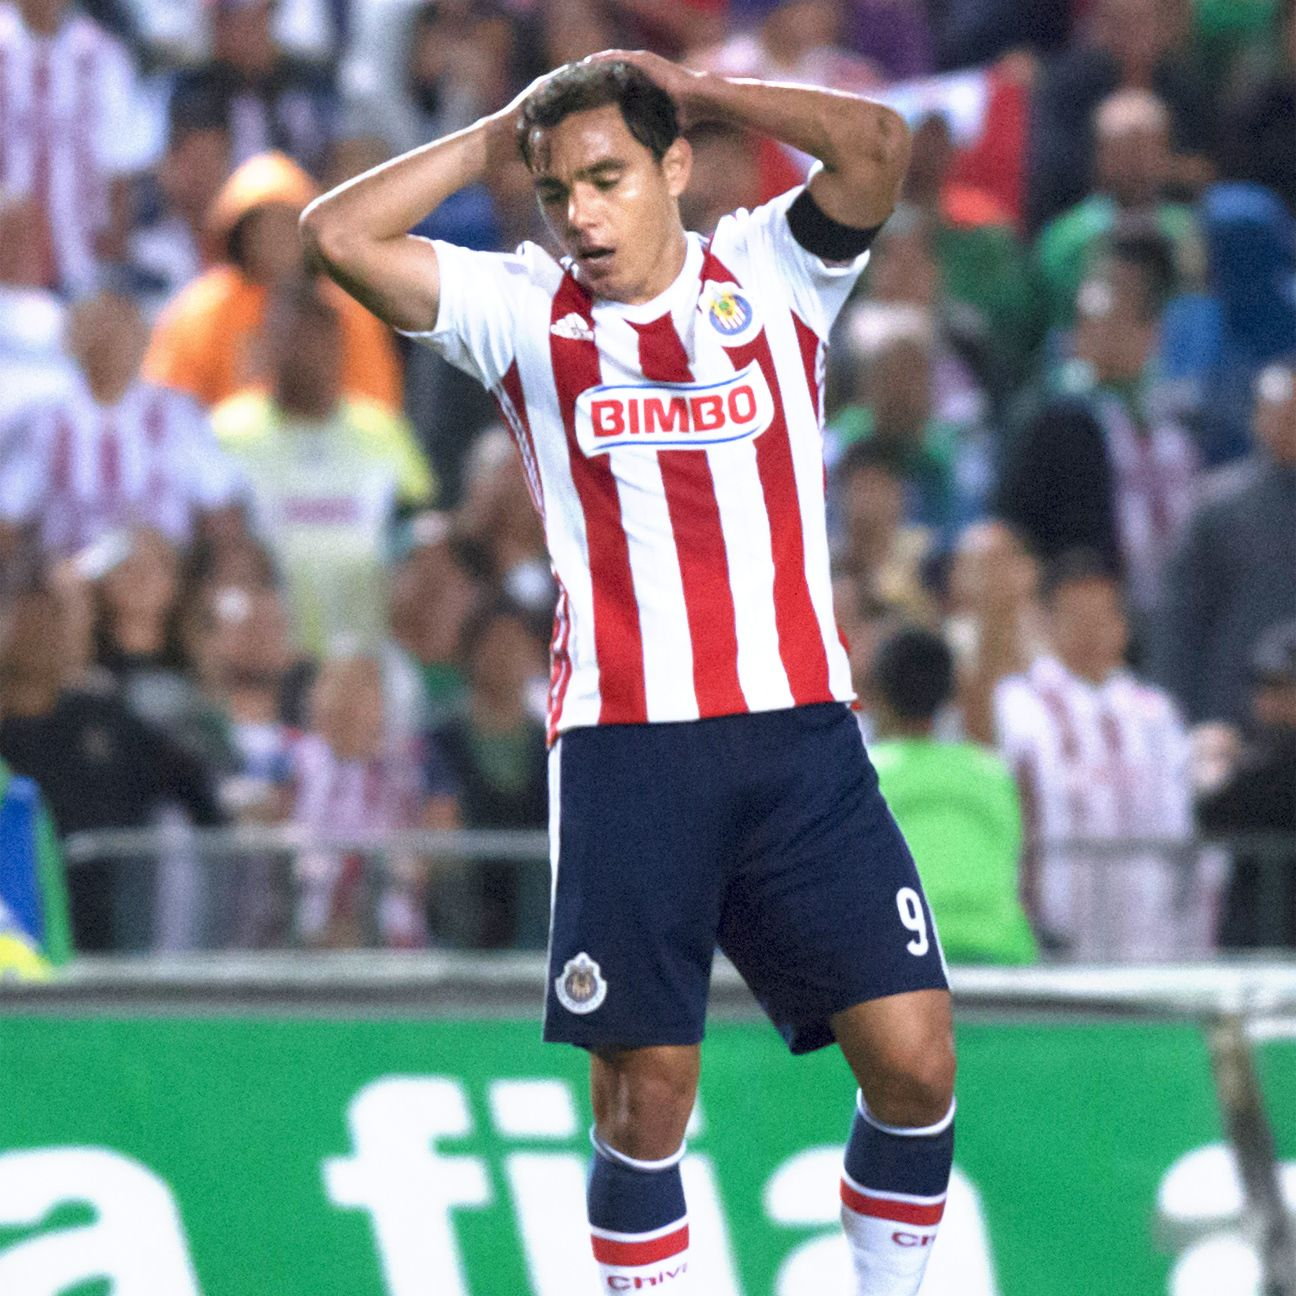 Omar Bravo and Chivas started the 2015 Clausura with a 2-1 defeat at Chiapas.